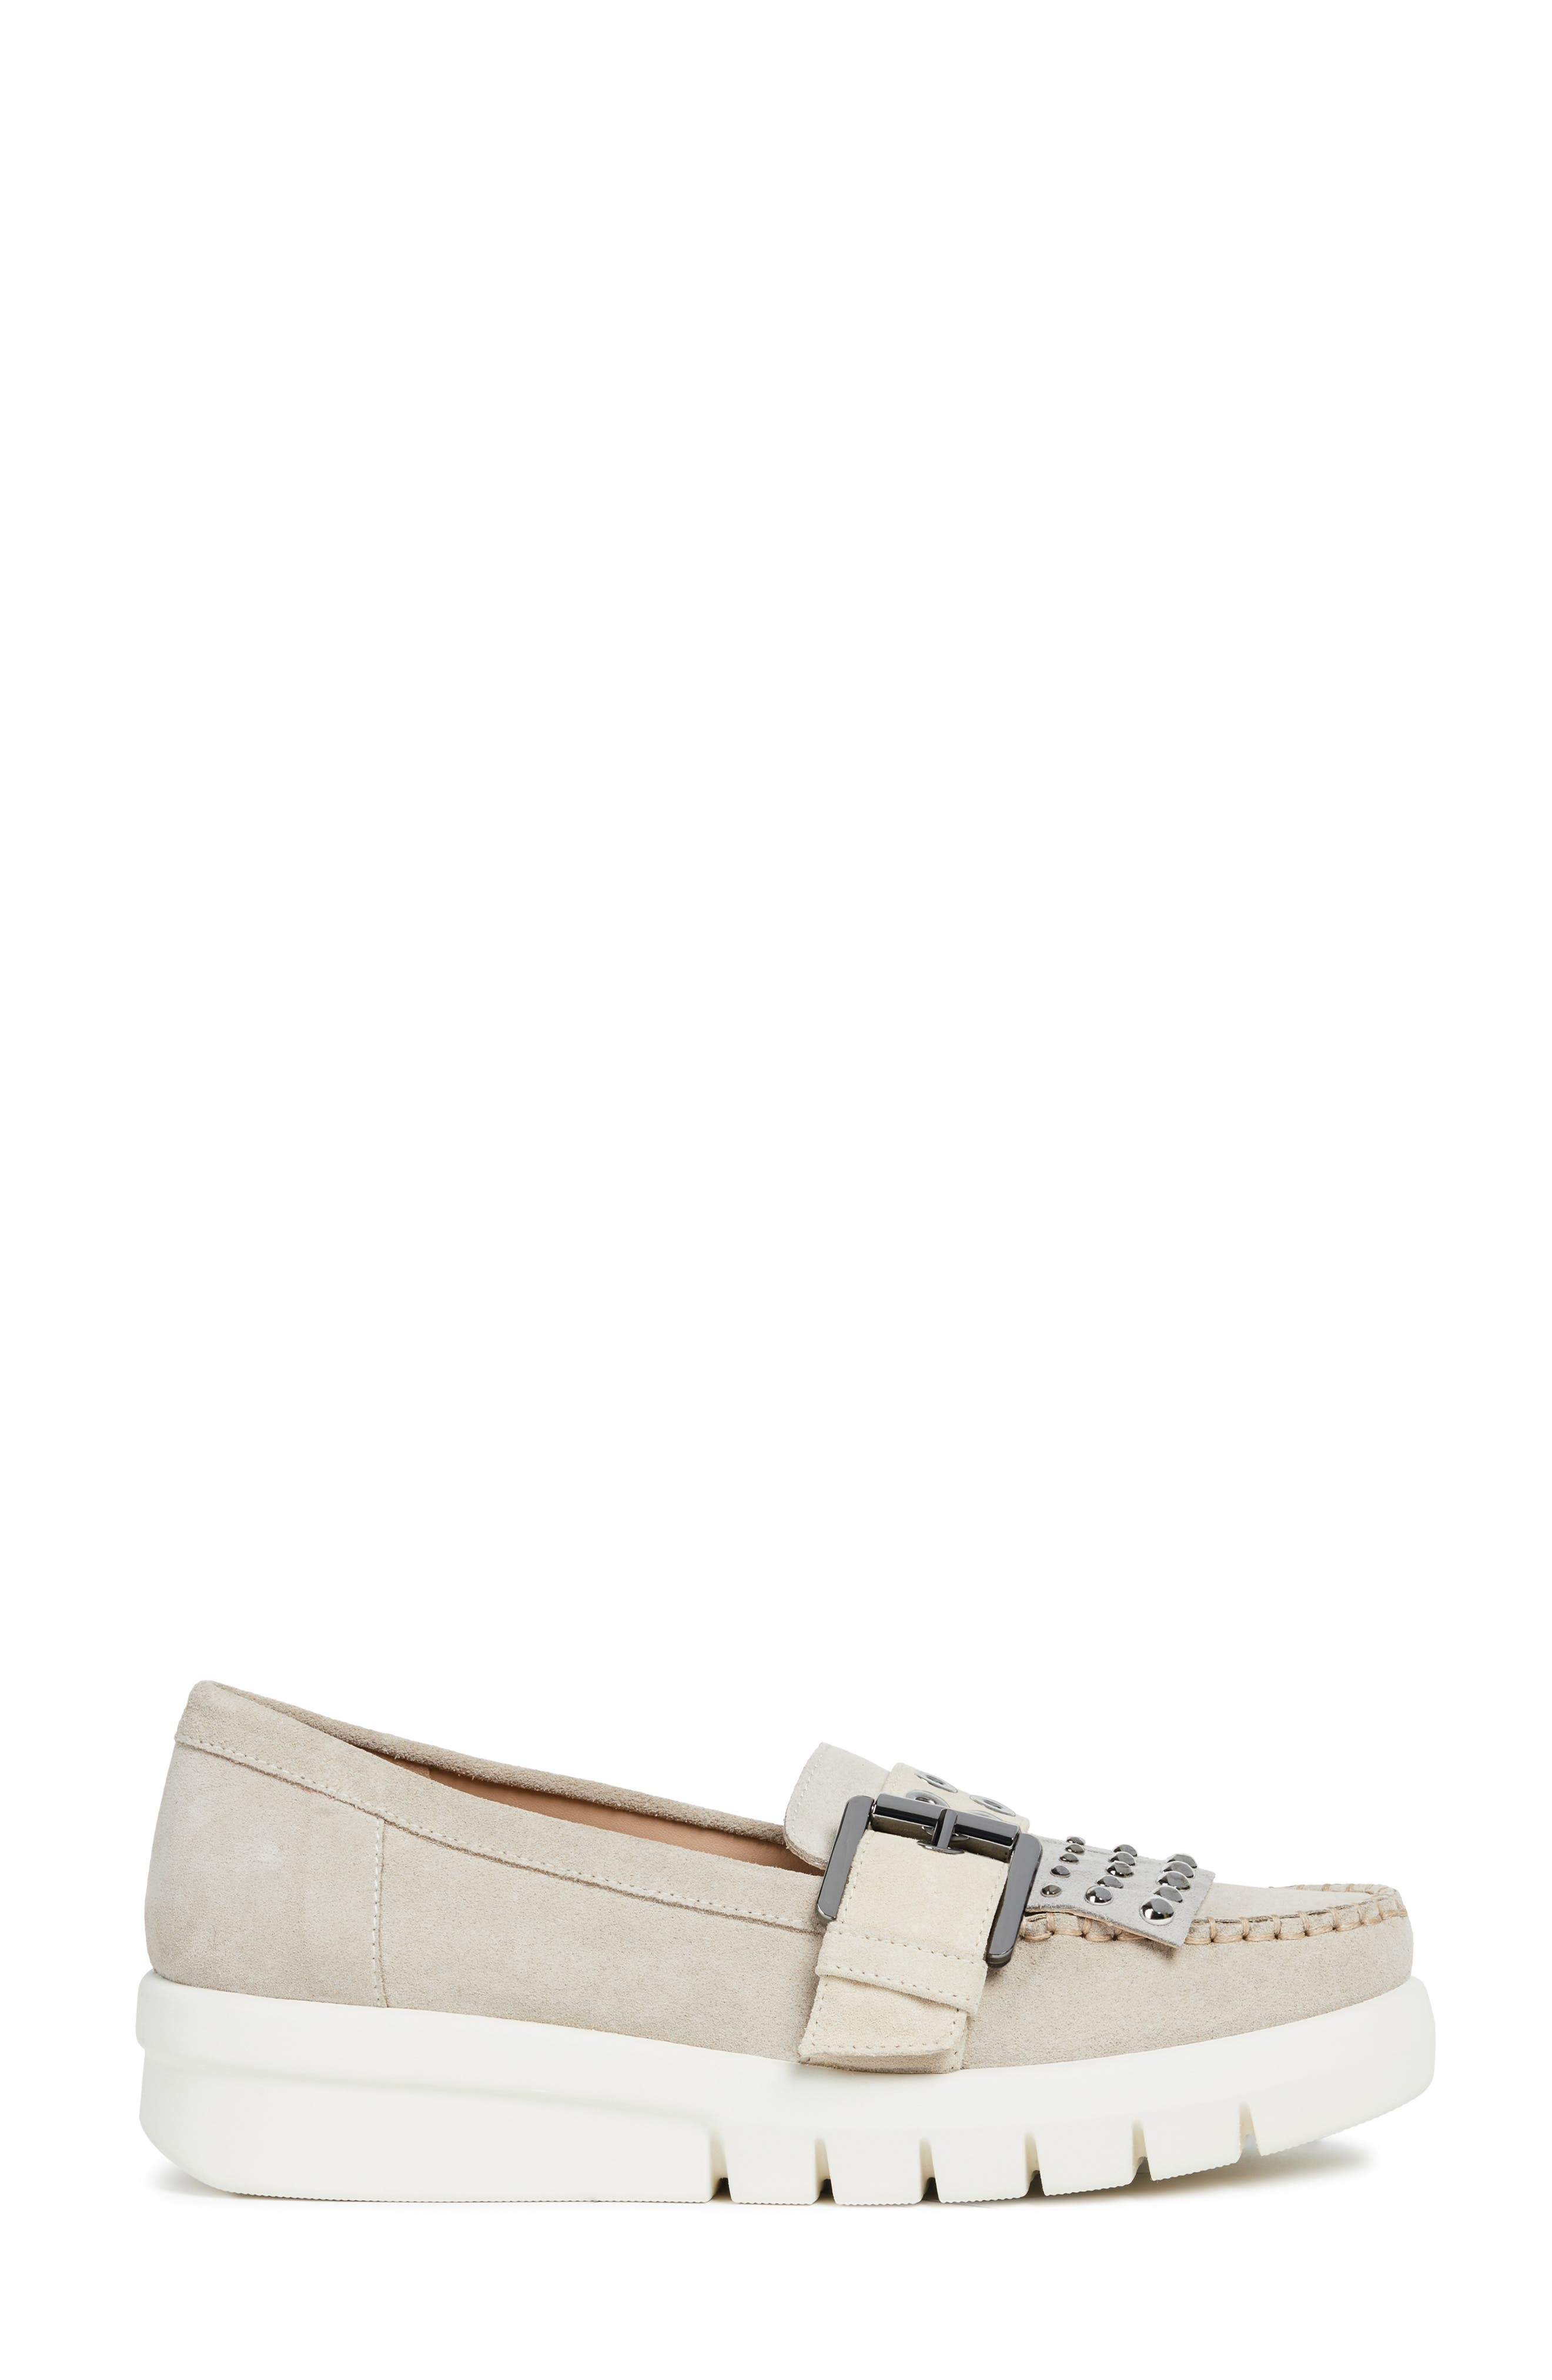 GEOX, Wimbley Studded Kiltie Loafer, Alternate thumbnail 3, color, LIGHT TAUPE/ GREY SUEDE